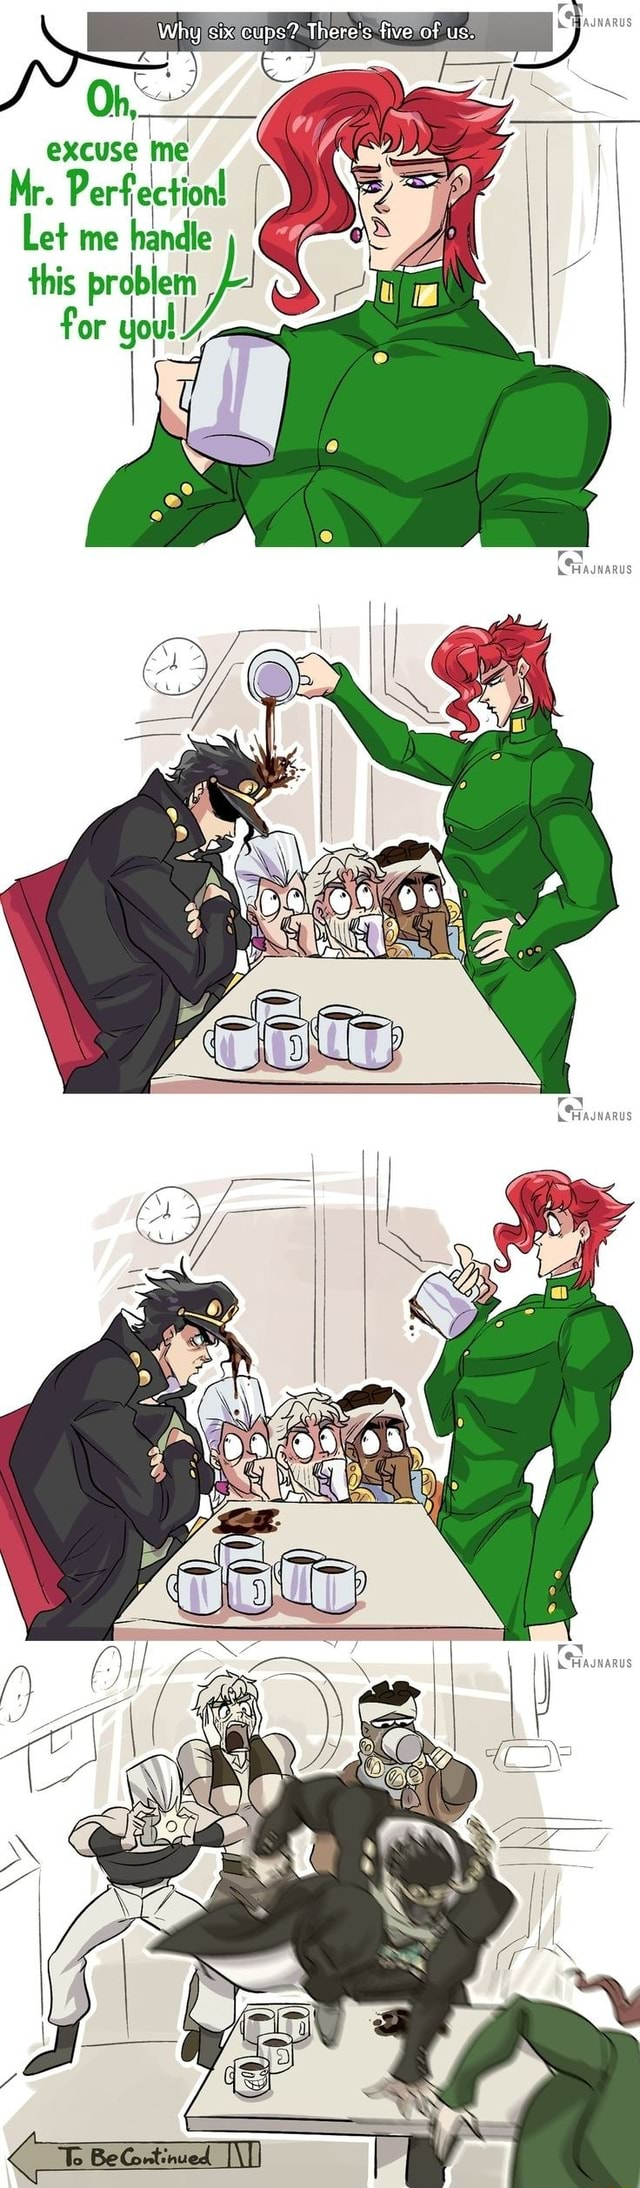 Oh, excuse me Mr. Perfection Let me handle this for yous I I g SS Why six cups There's five of us. j memes